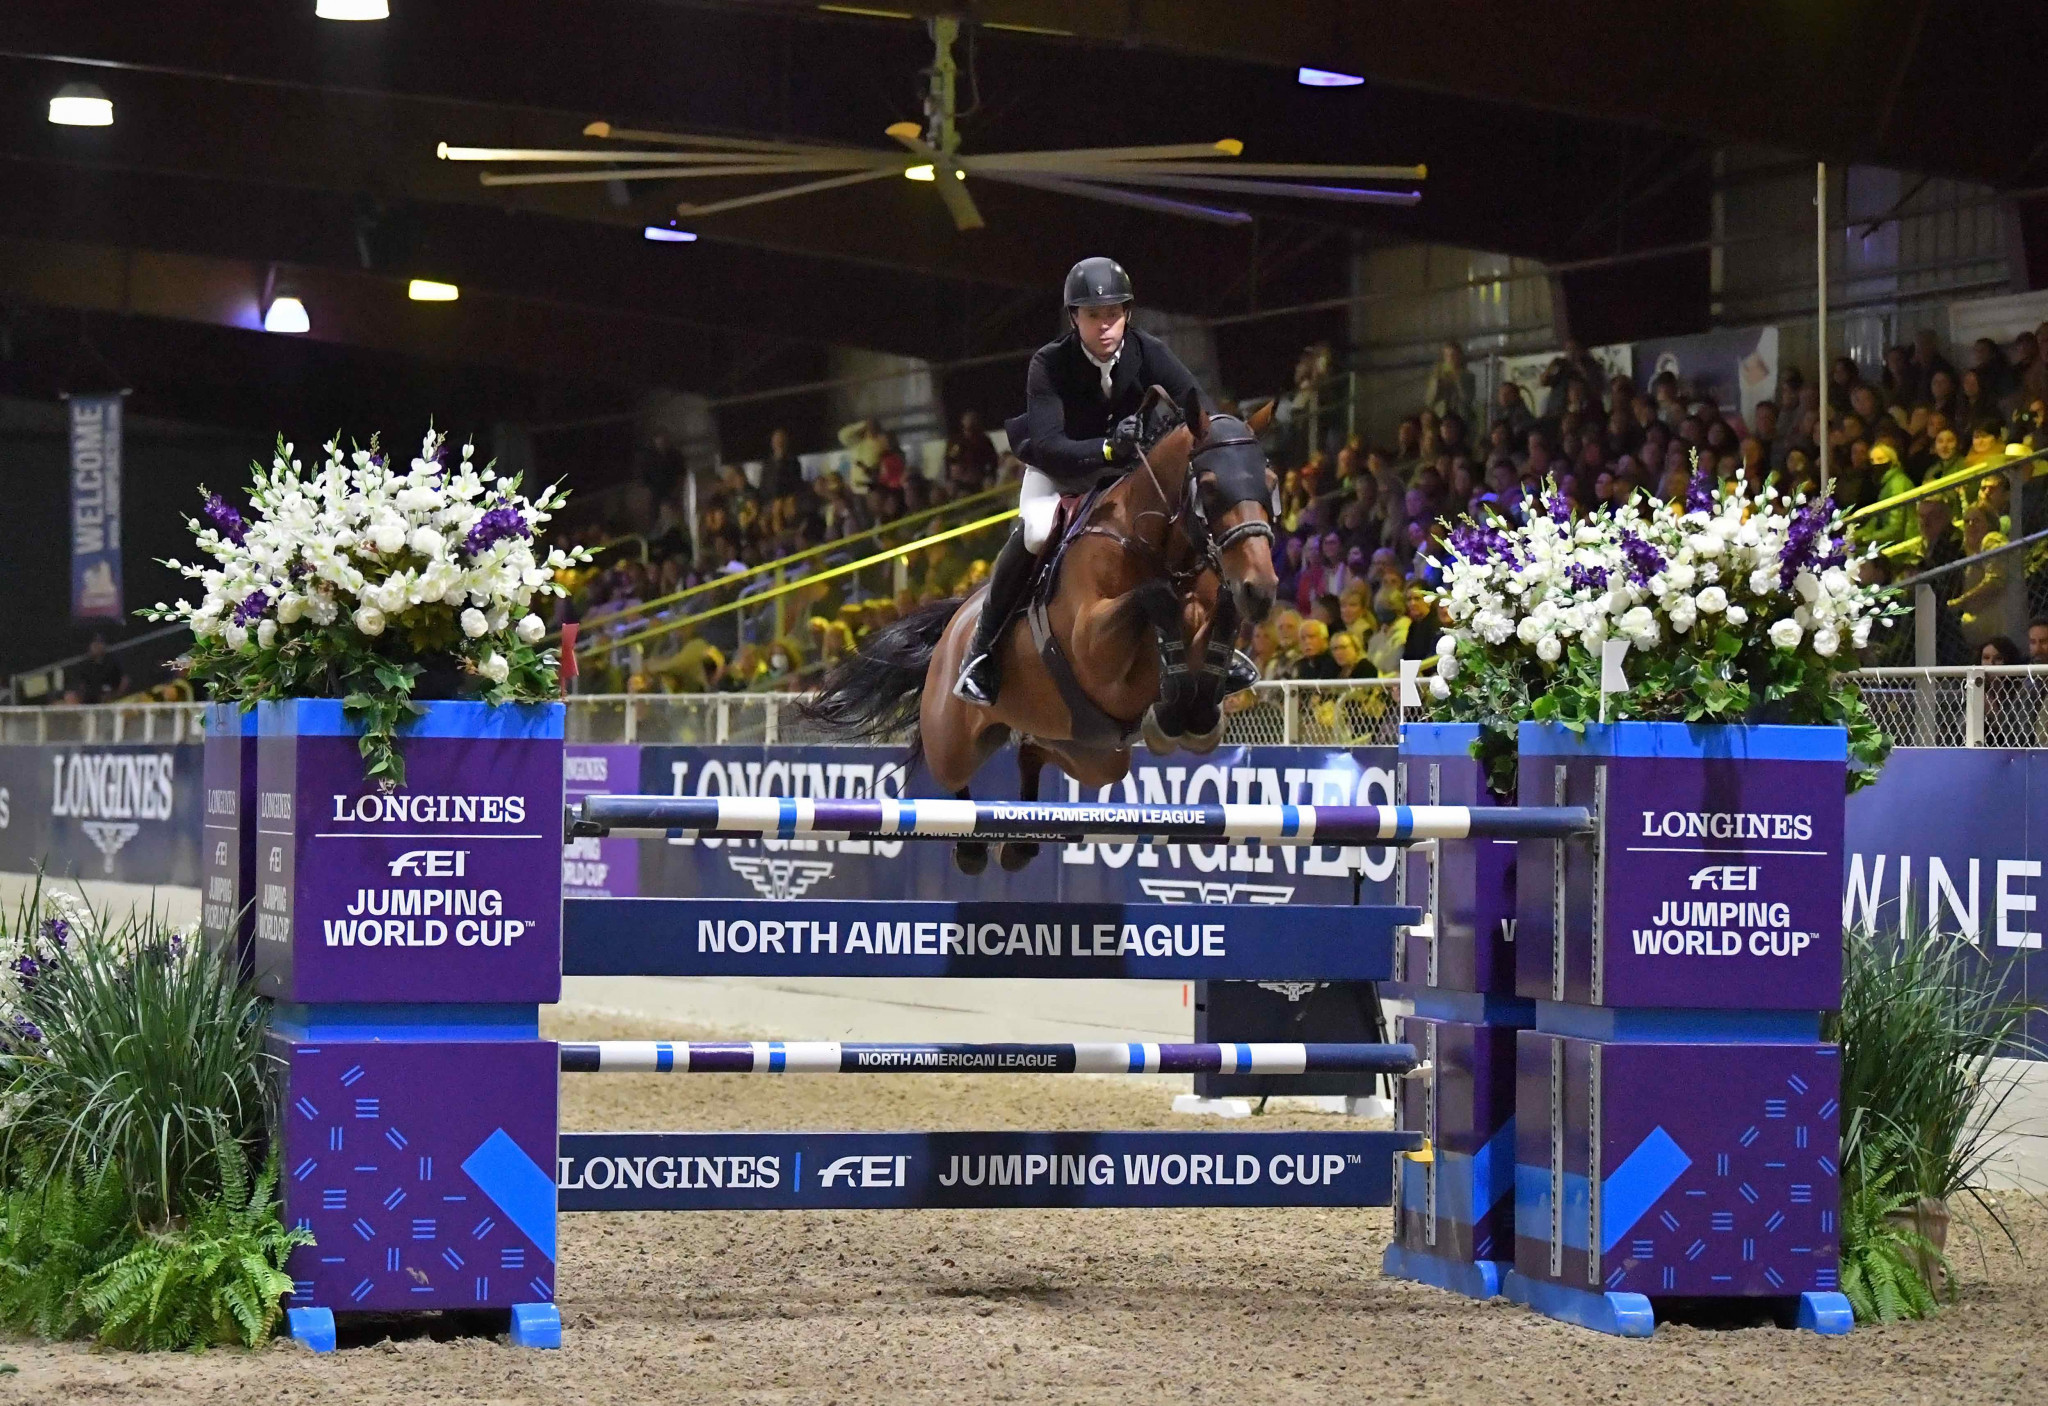 Irishman Swail rides to second Jumping World Cup North American League victory in a row